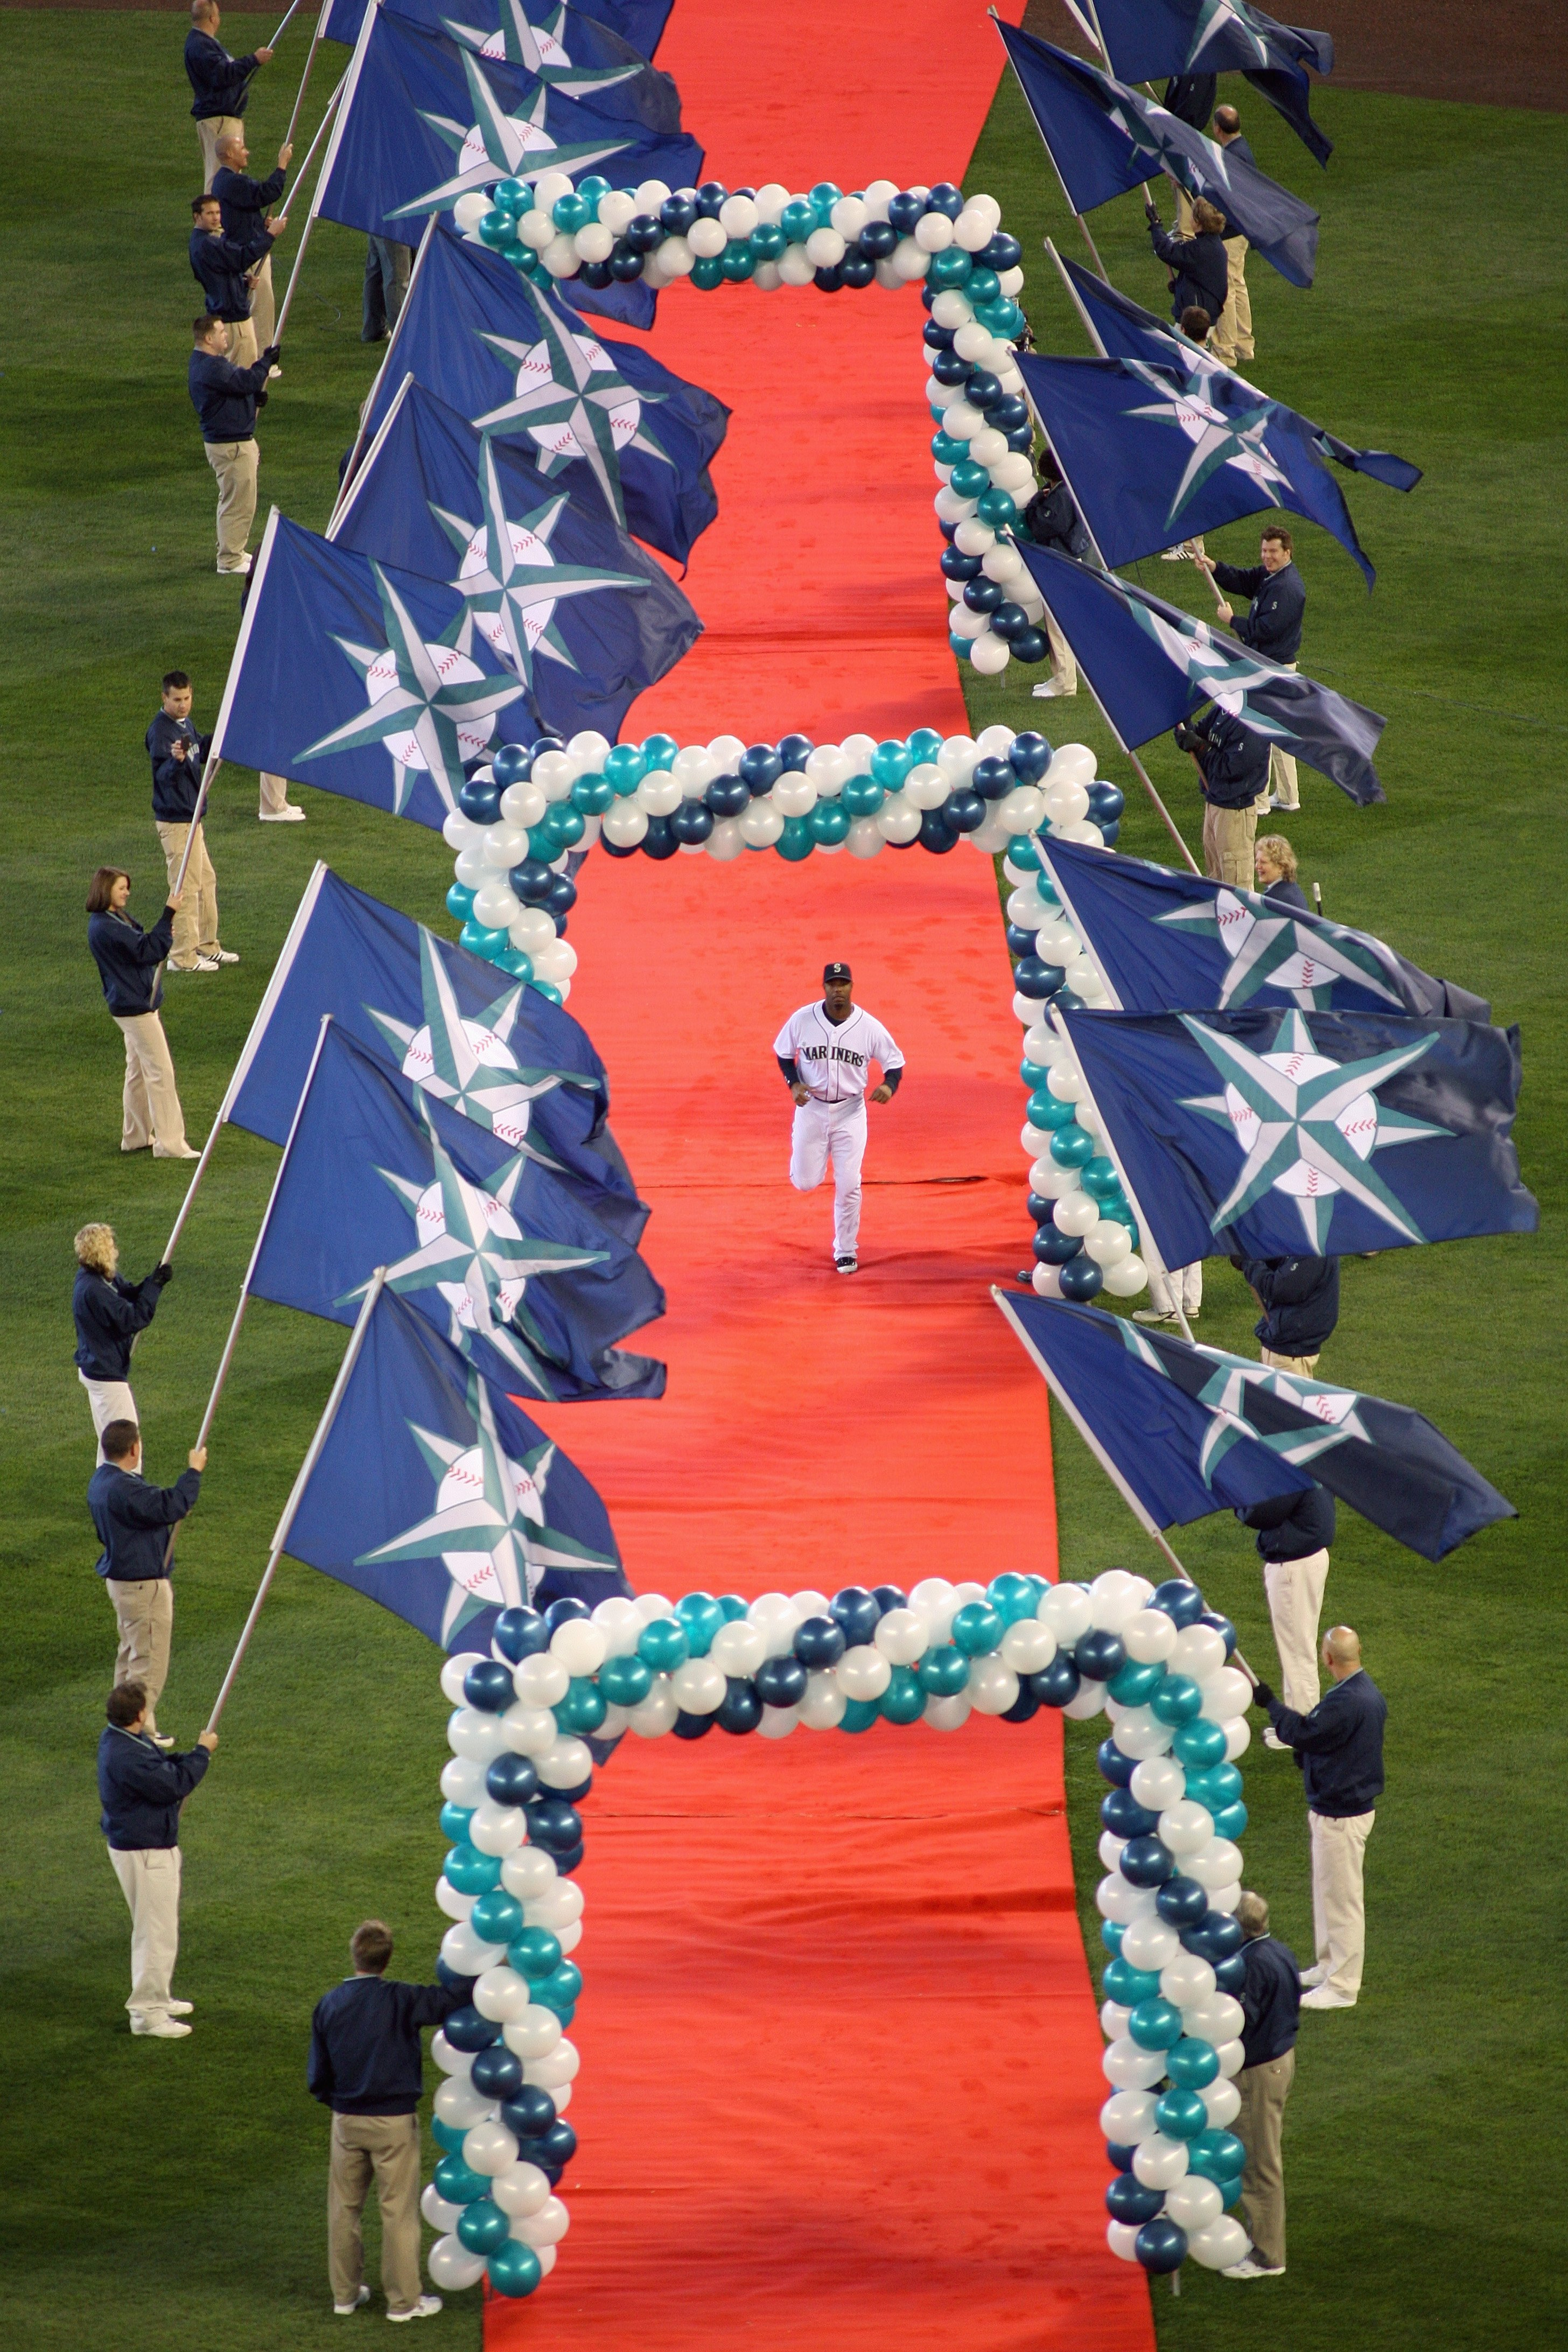 SEATTLE - APRIL 14:  Ken Griffey Jr #24 of the Seattle Mariners is introduced before the Opening Day game against the Los Angeles Angels of Anaheim on April 14, 2009 at Safeco Field in Seattle, Washington. (Photo by: Otto Greule Jr/Getty Images)